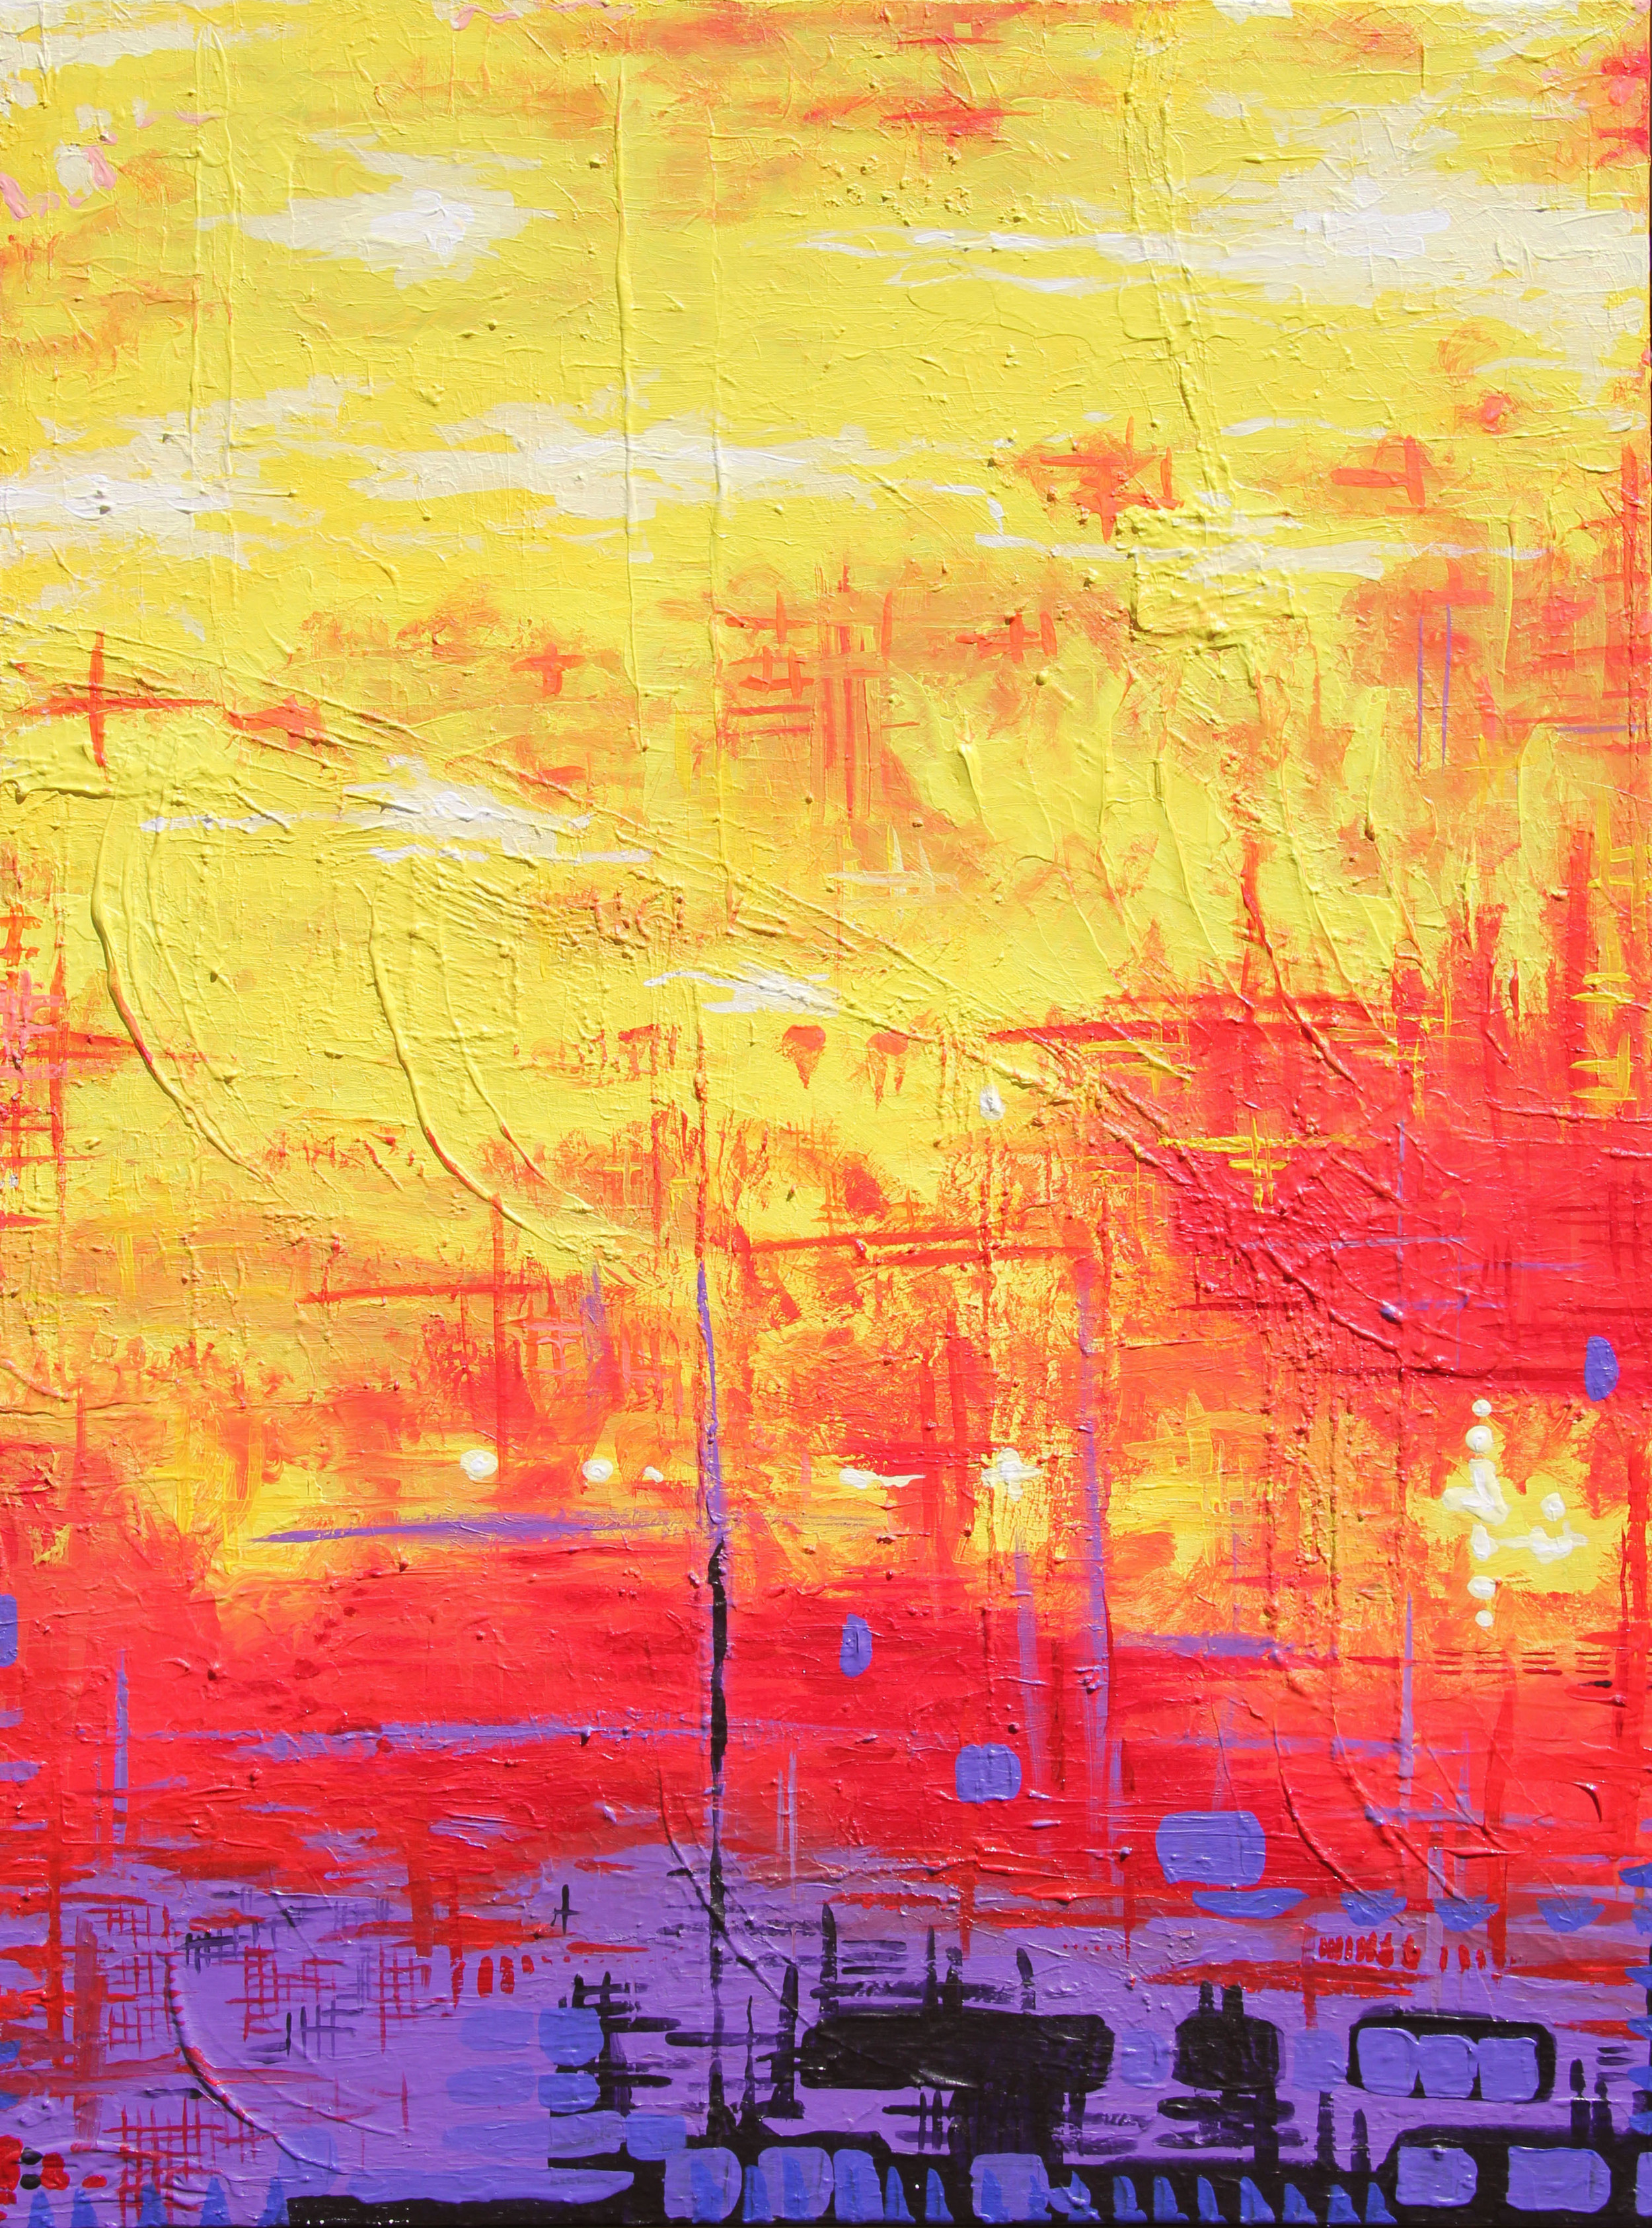 """gomorra    30"""" x 40""""  acrylic, gesso, and course texture gel on canvas  2012-2014"""